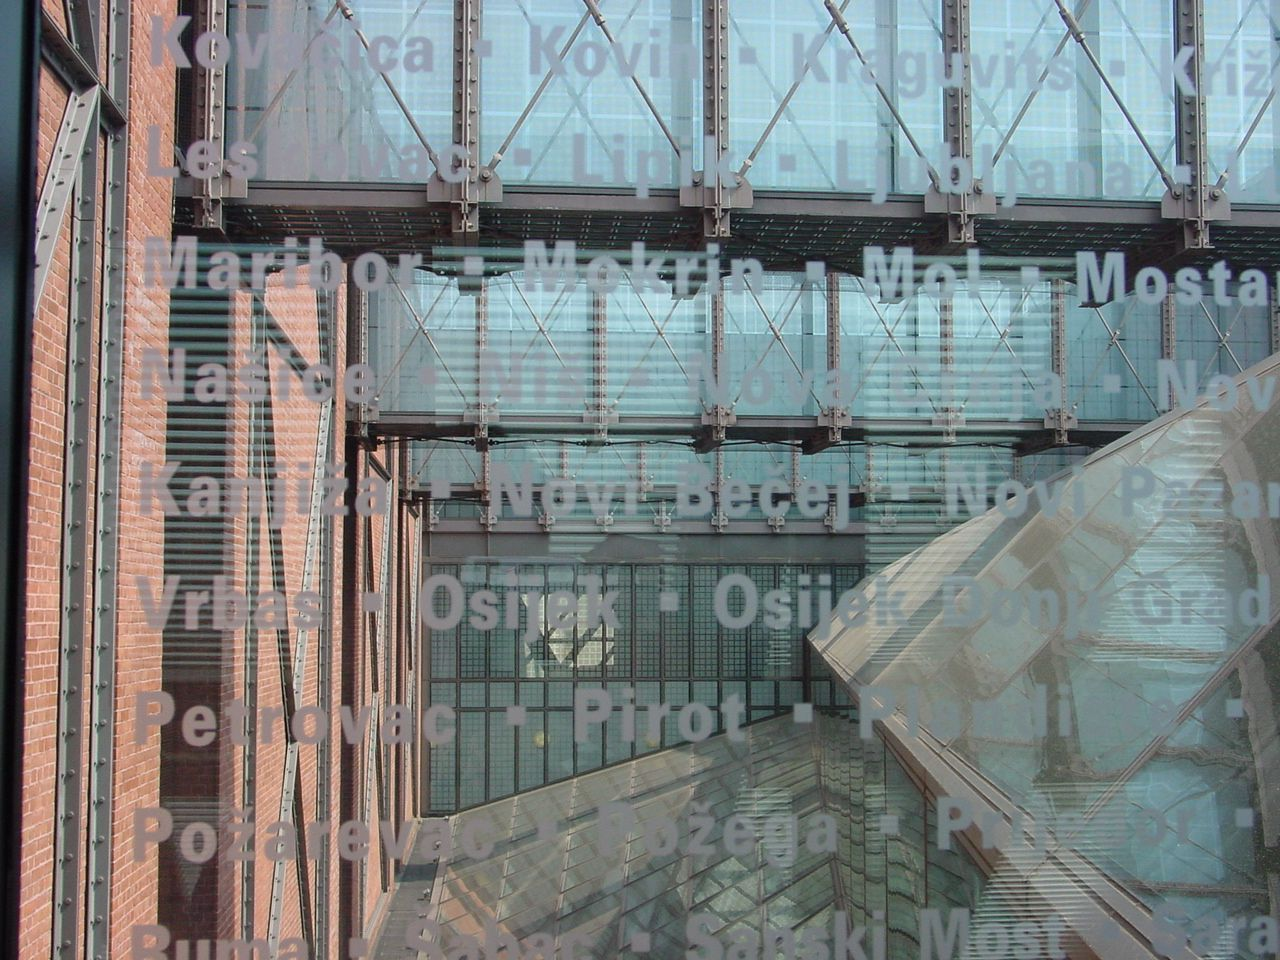 Google Image Result for http://upload.wikimedia.org/wikipedia/commons/2/20/United_States_Holocaust_Memorial_Museum_Bridges.jpg